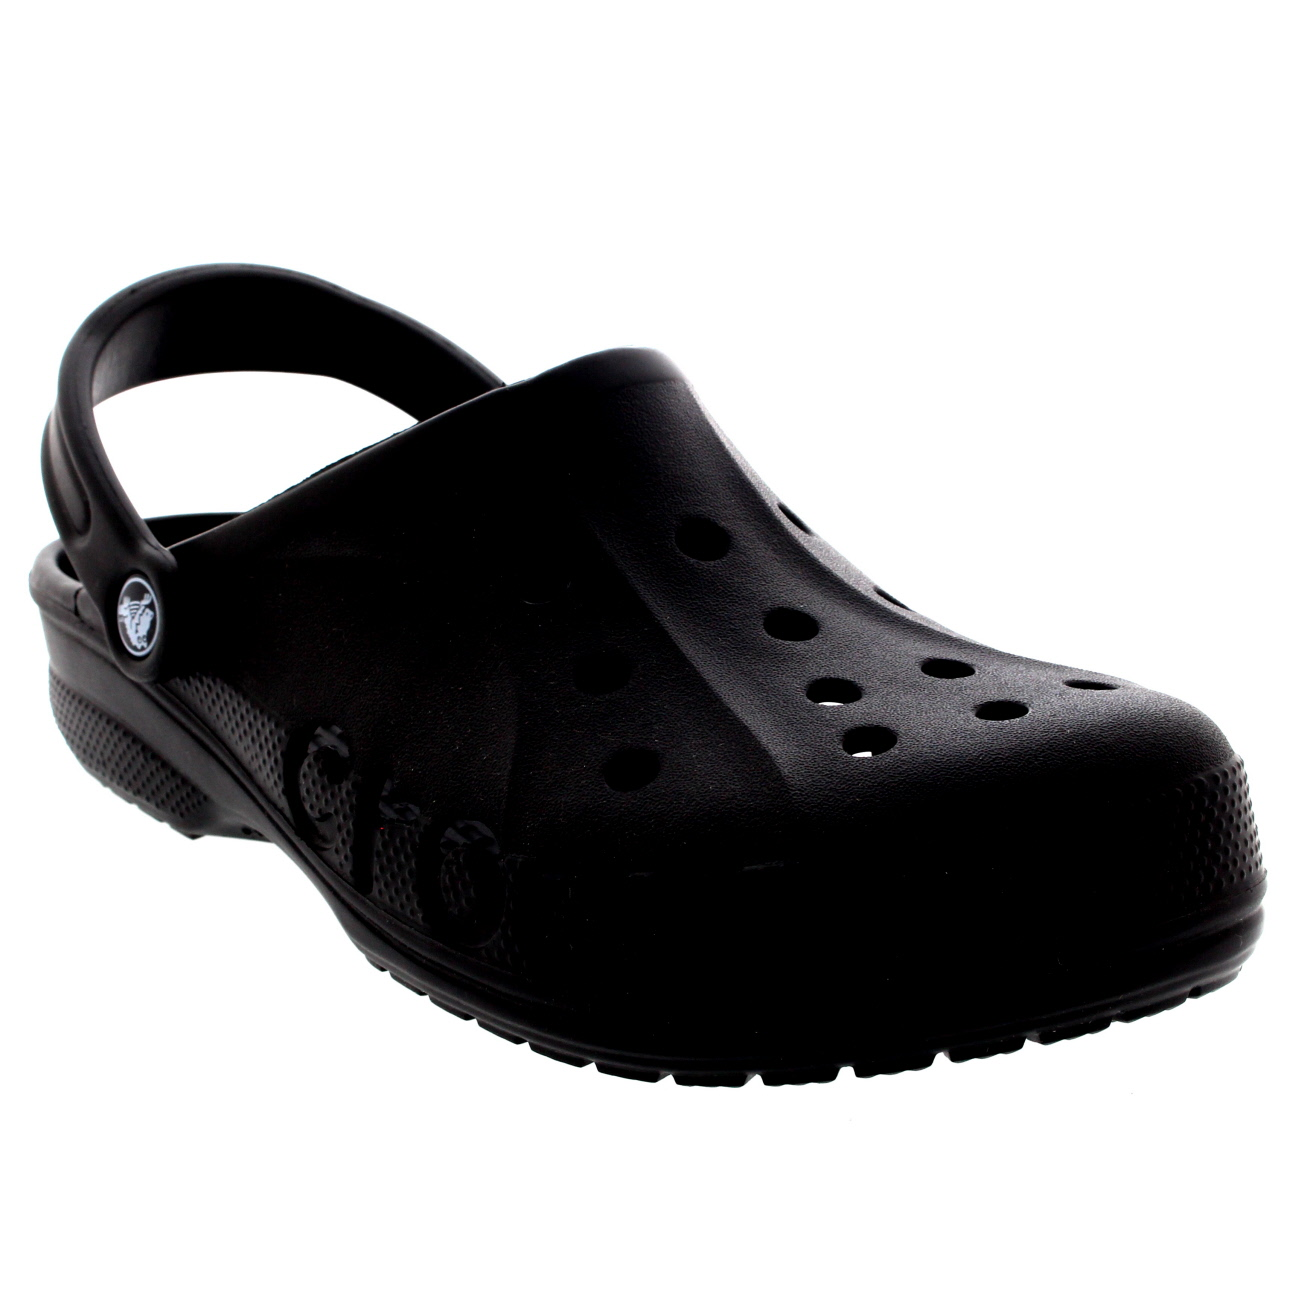 Unisex Adults Crocs Baya